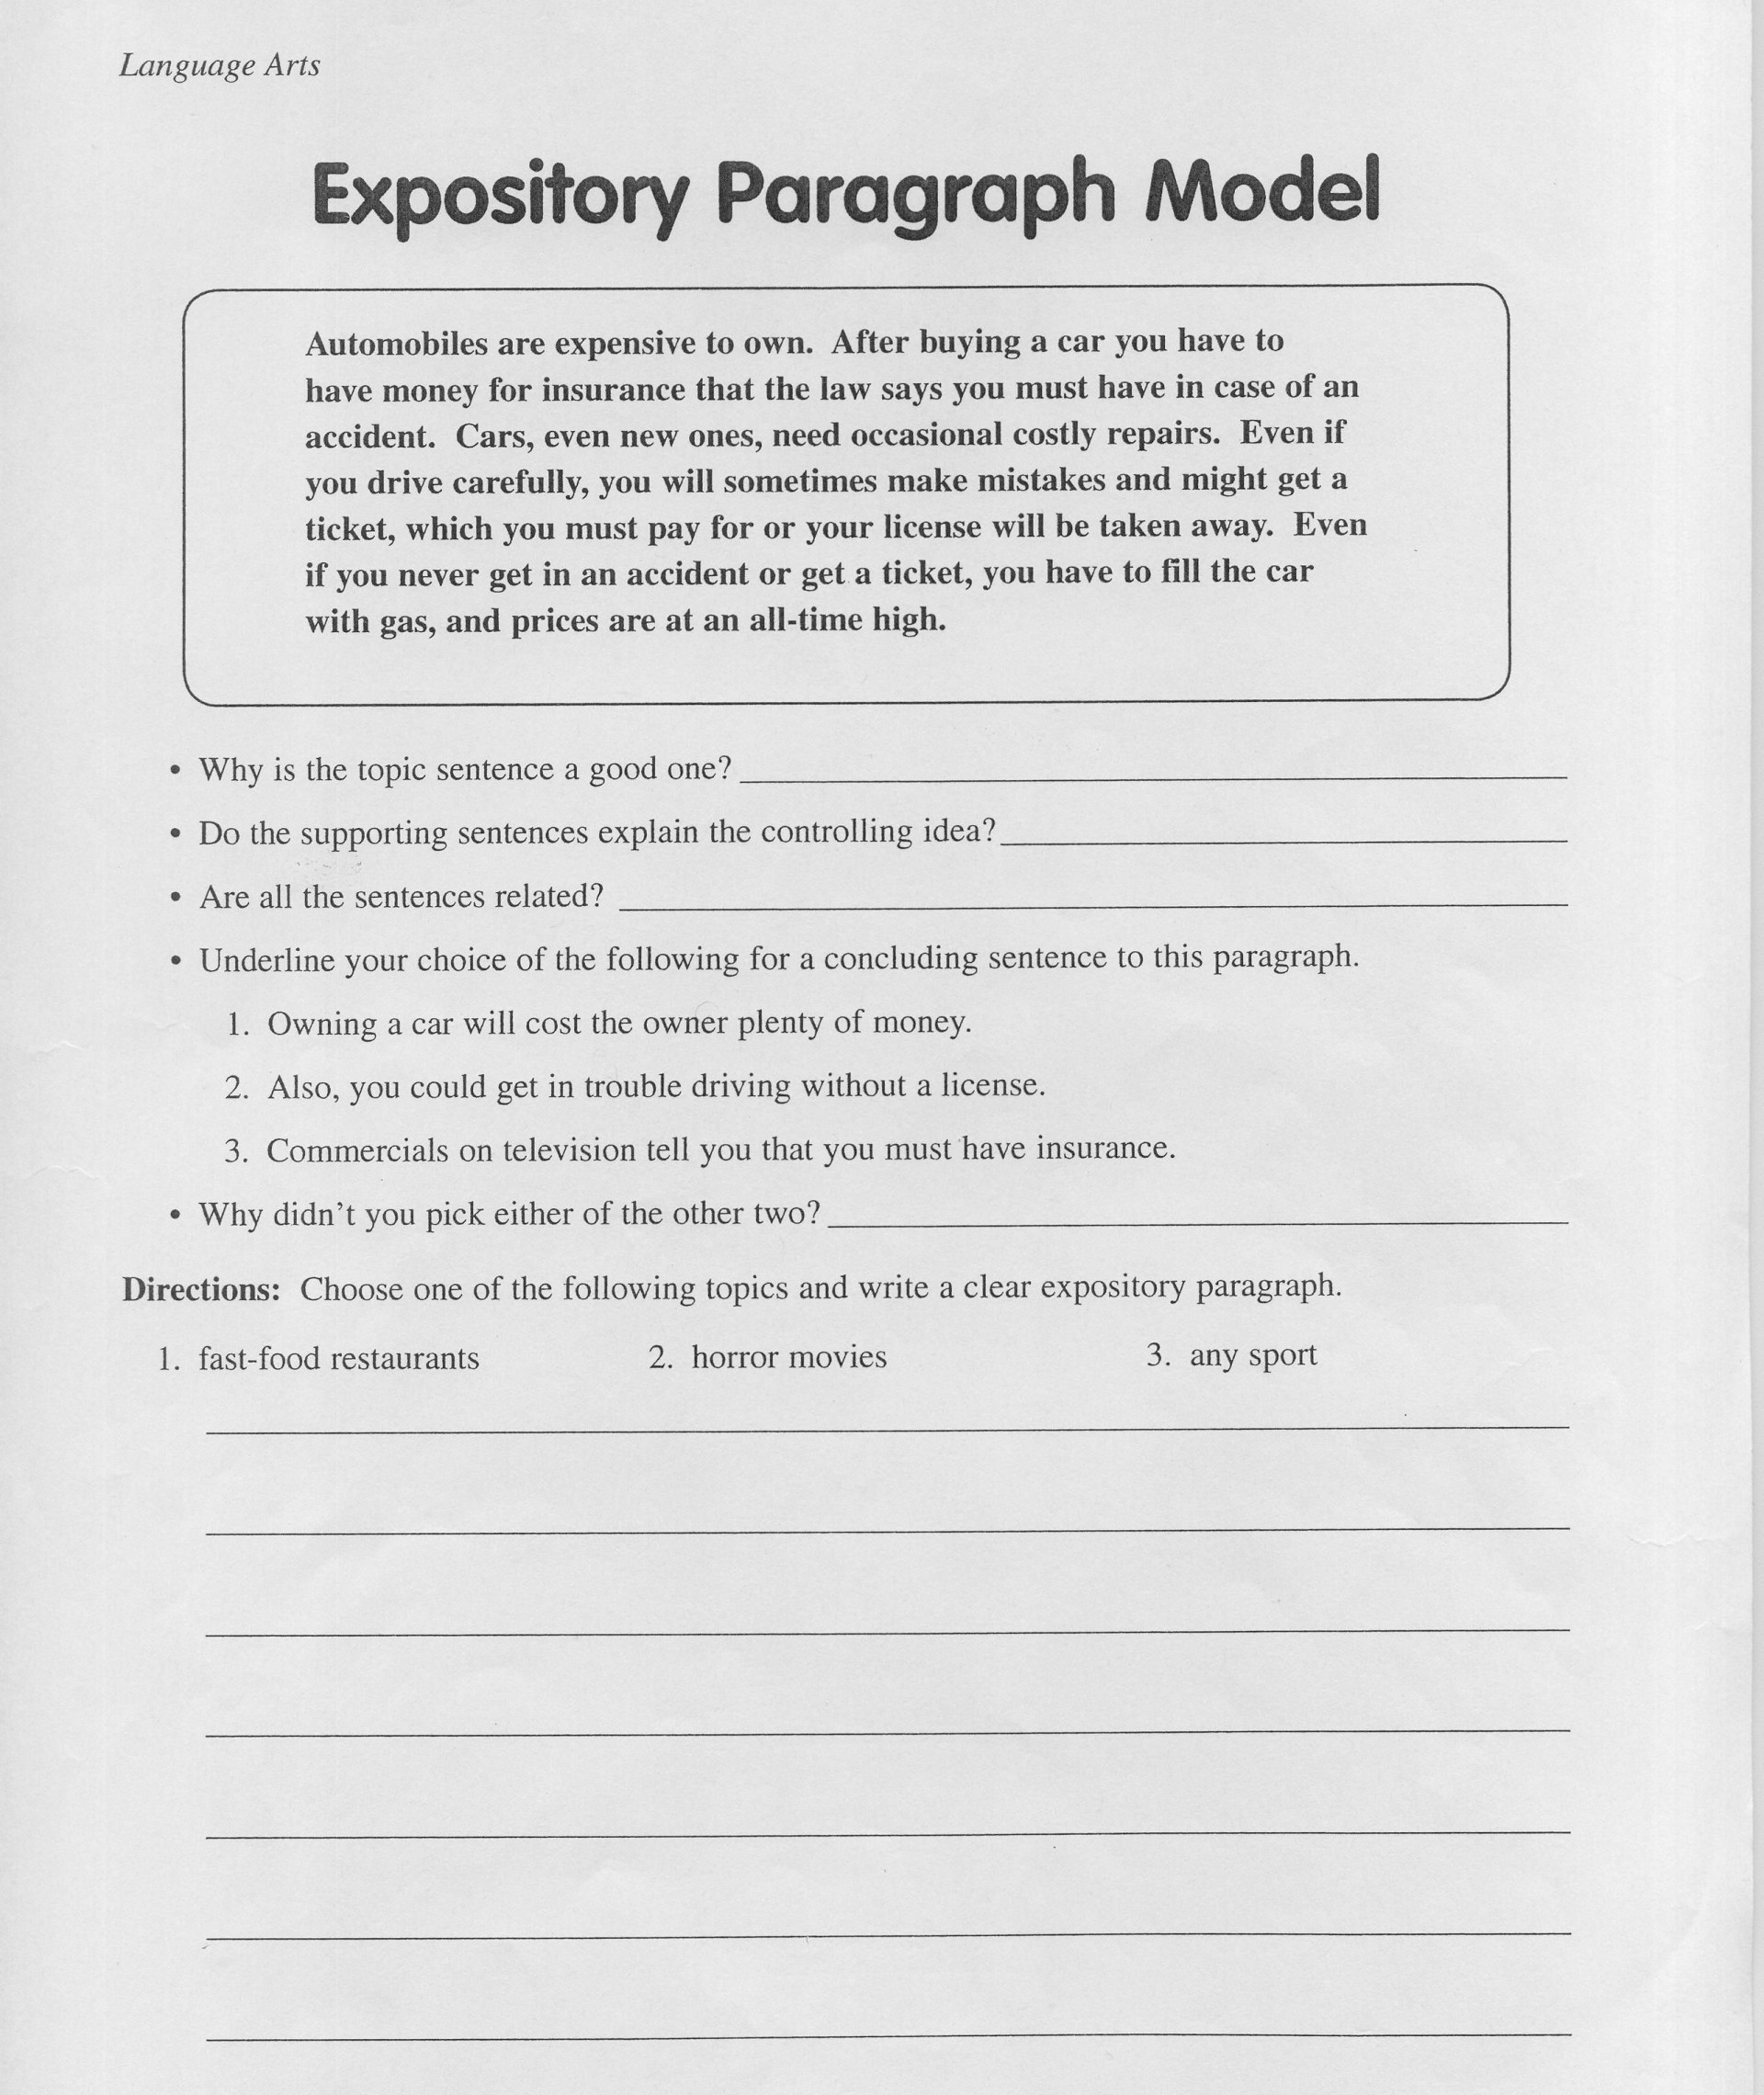 011 Essay Example Expository Awesome Topics For 4th Grade Prompt High School Prompts 7th 1920